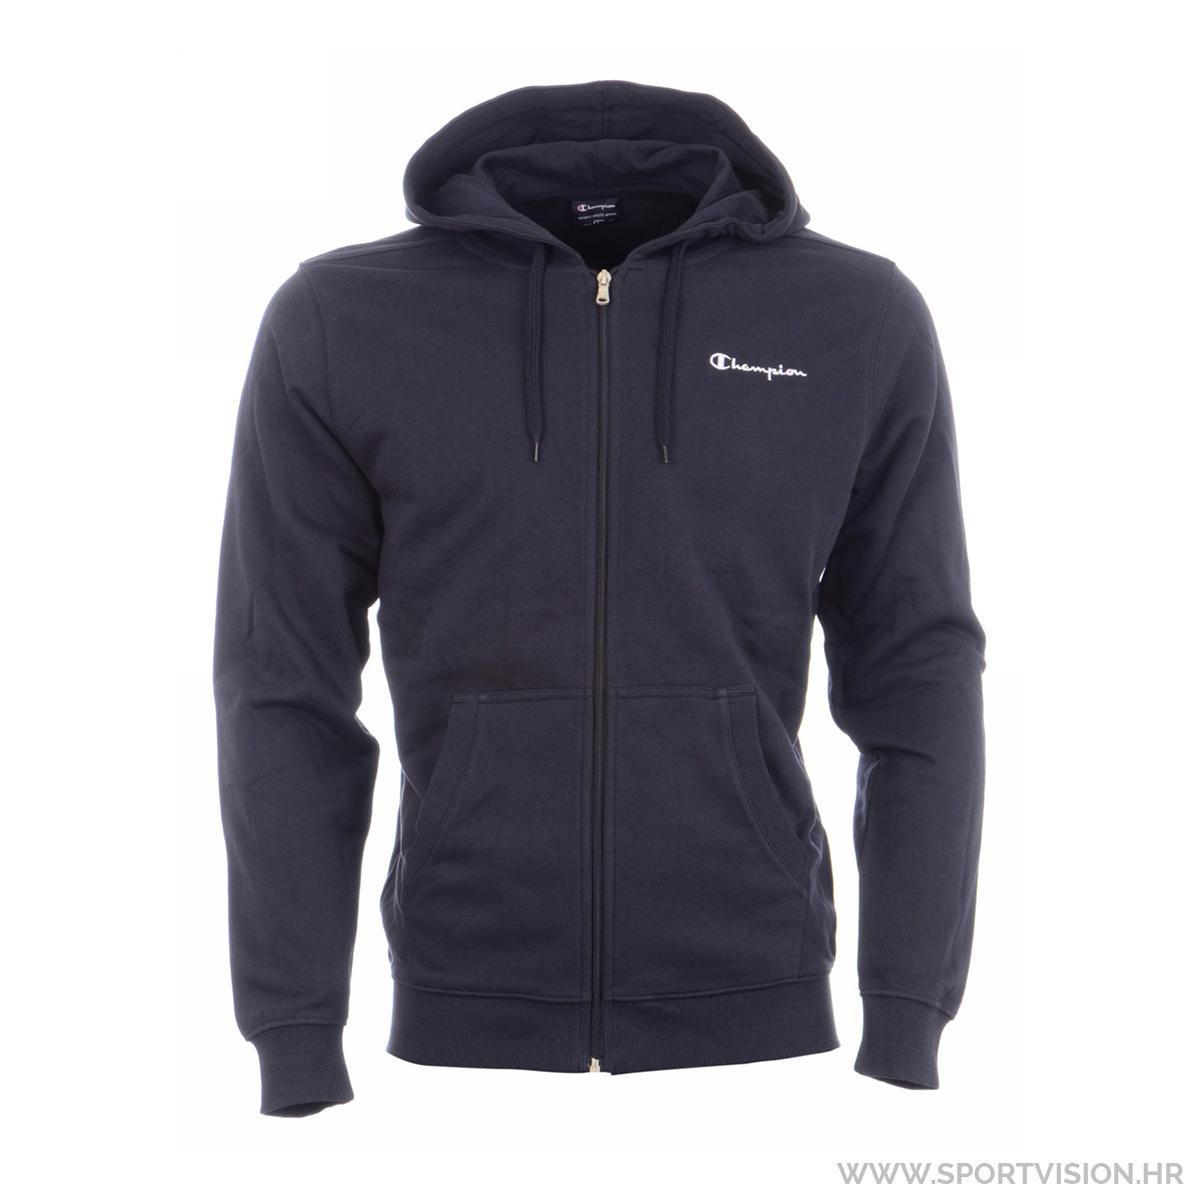 MEN'S FULL ZIP HOODY WITH KARGO POCKETS